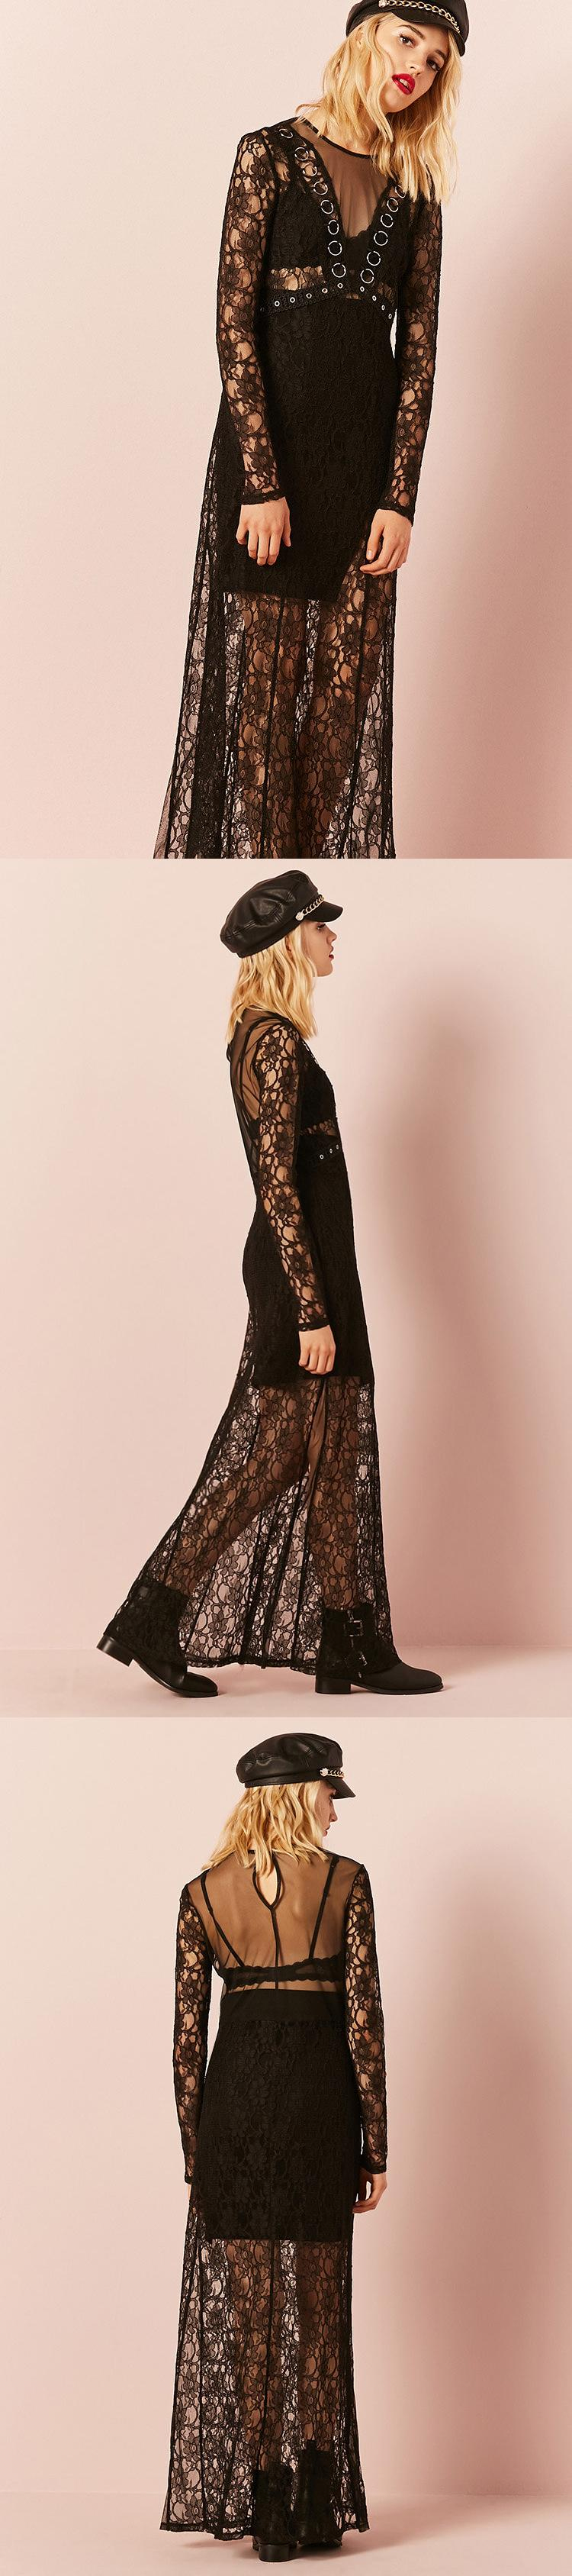 Sheer lace oring maxi dress usd forever new